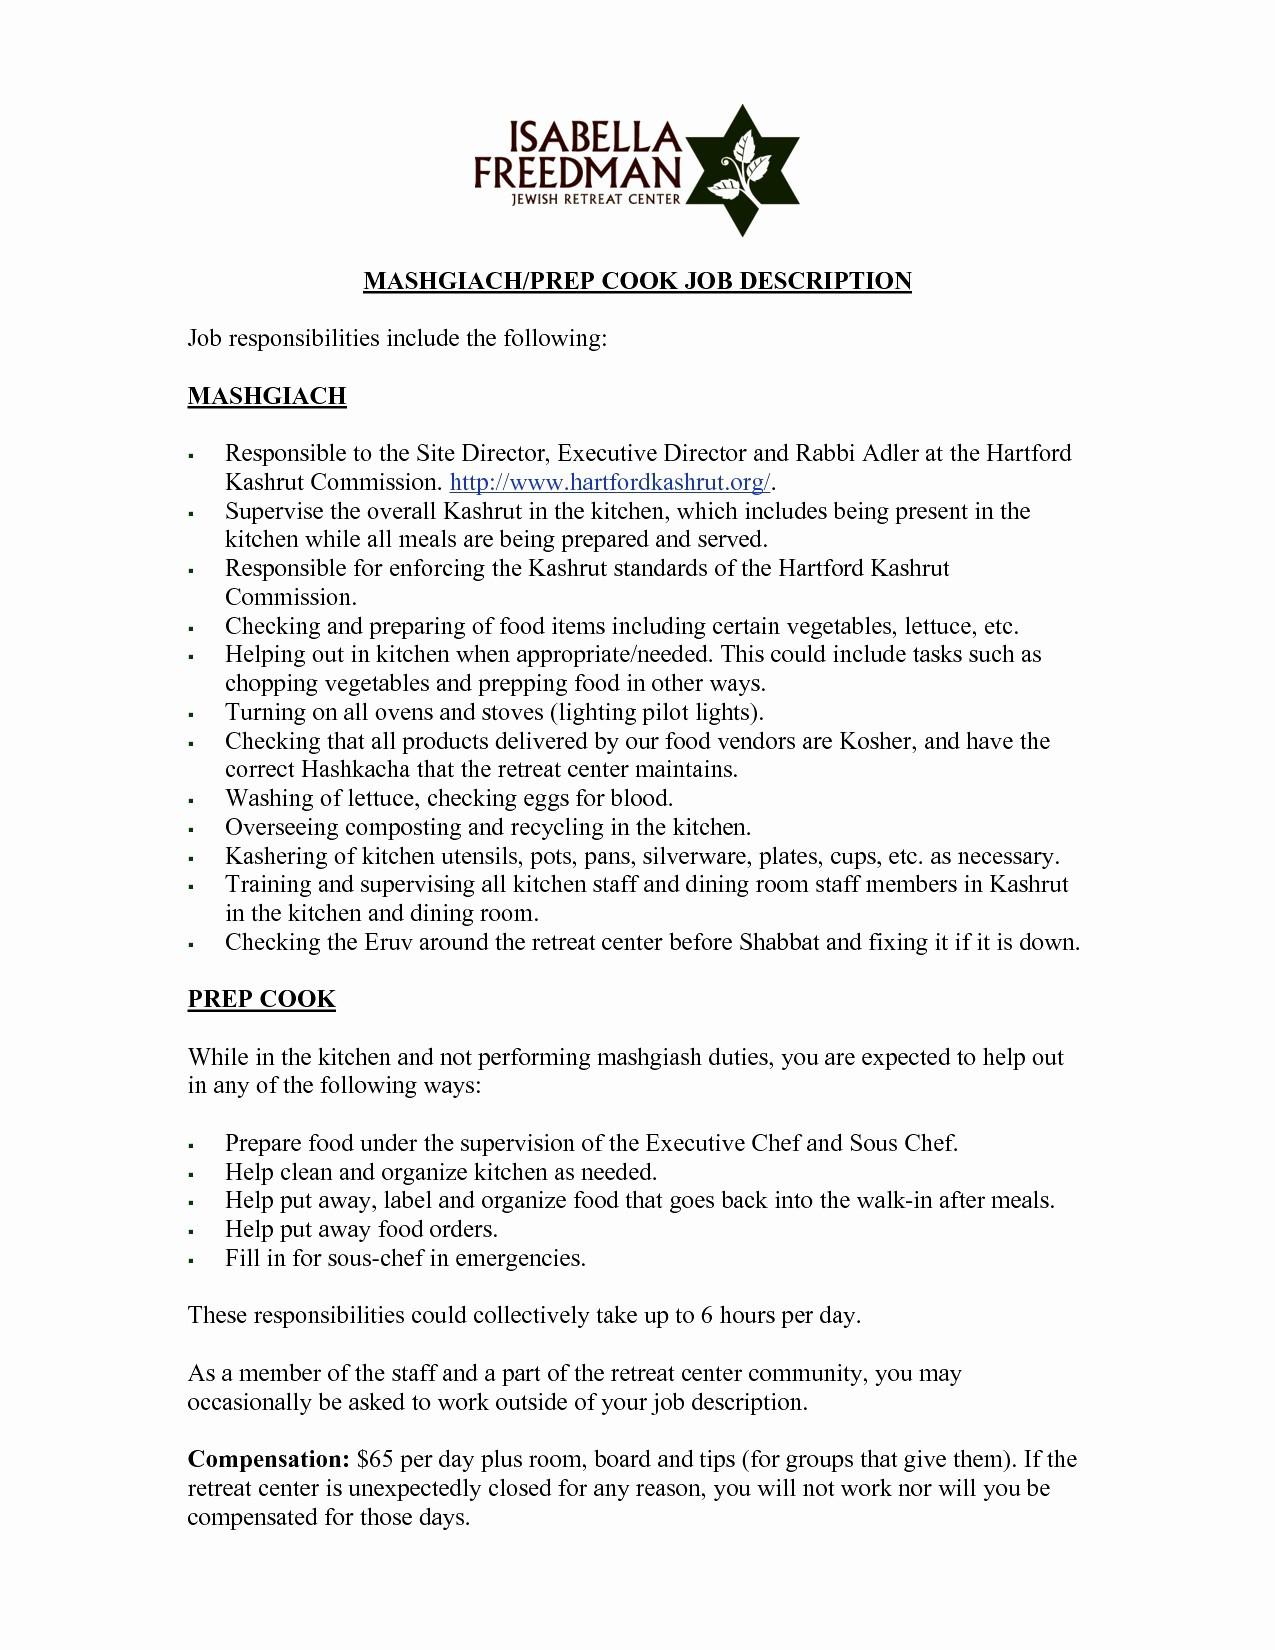 What Do I Need for A Resume - Customer Service Executive Job Description Resume Reference Resume